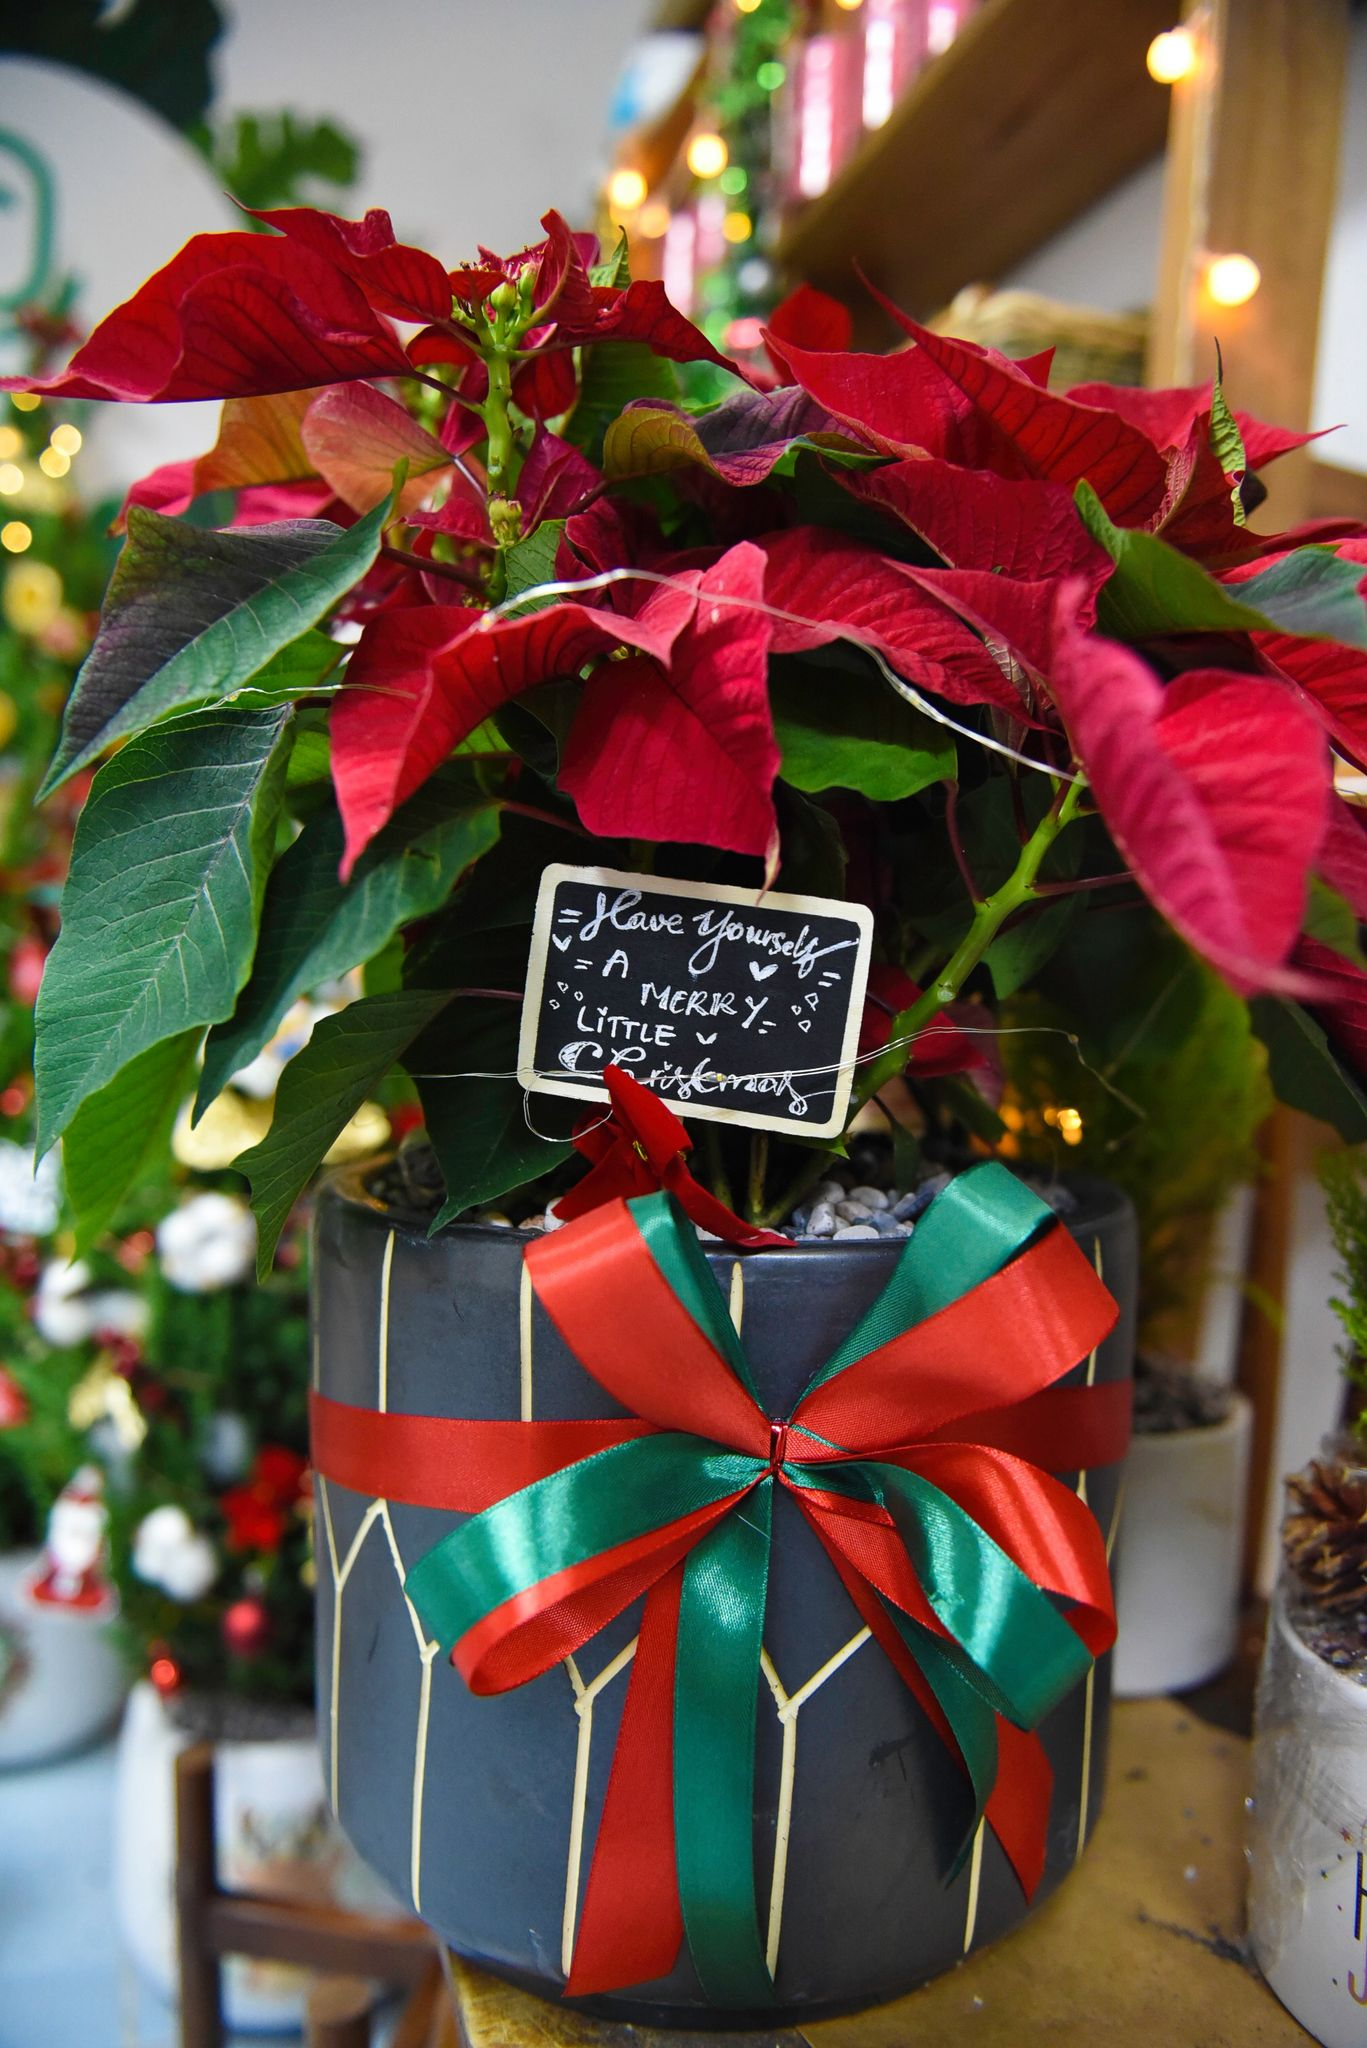 Poinsettia is also a favorite in the holiday season, with fully decorated ones fetching from around VND189,000 ($8) each in Ho Chi Minh City. Photo: Ngoc Phuong/ Tuoi Tre News